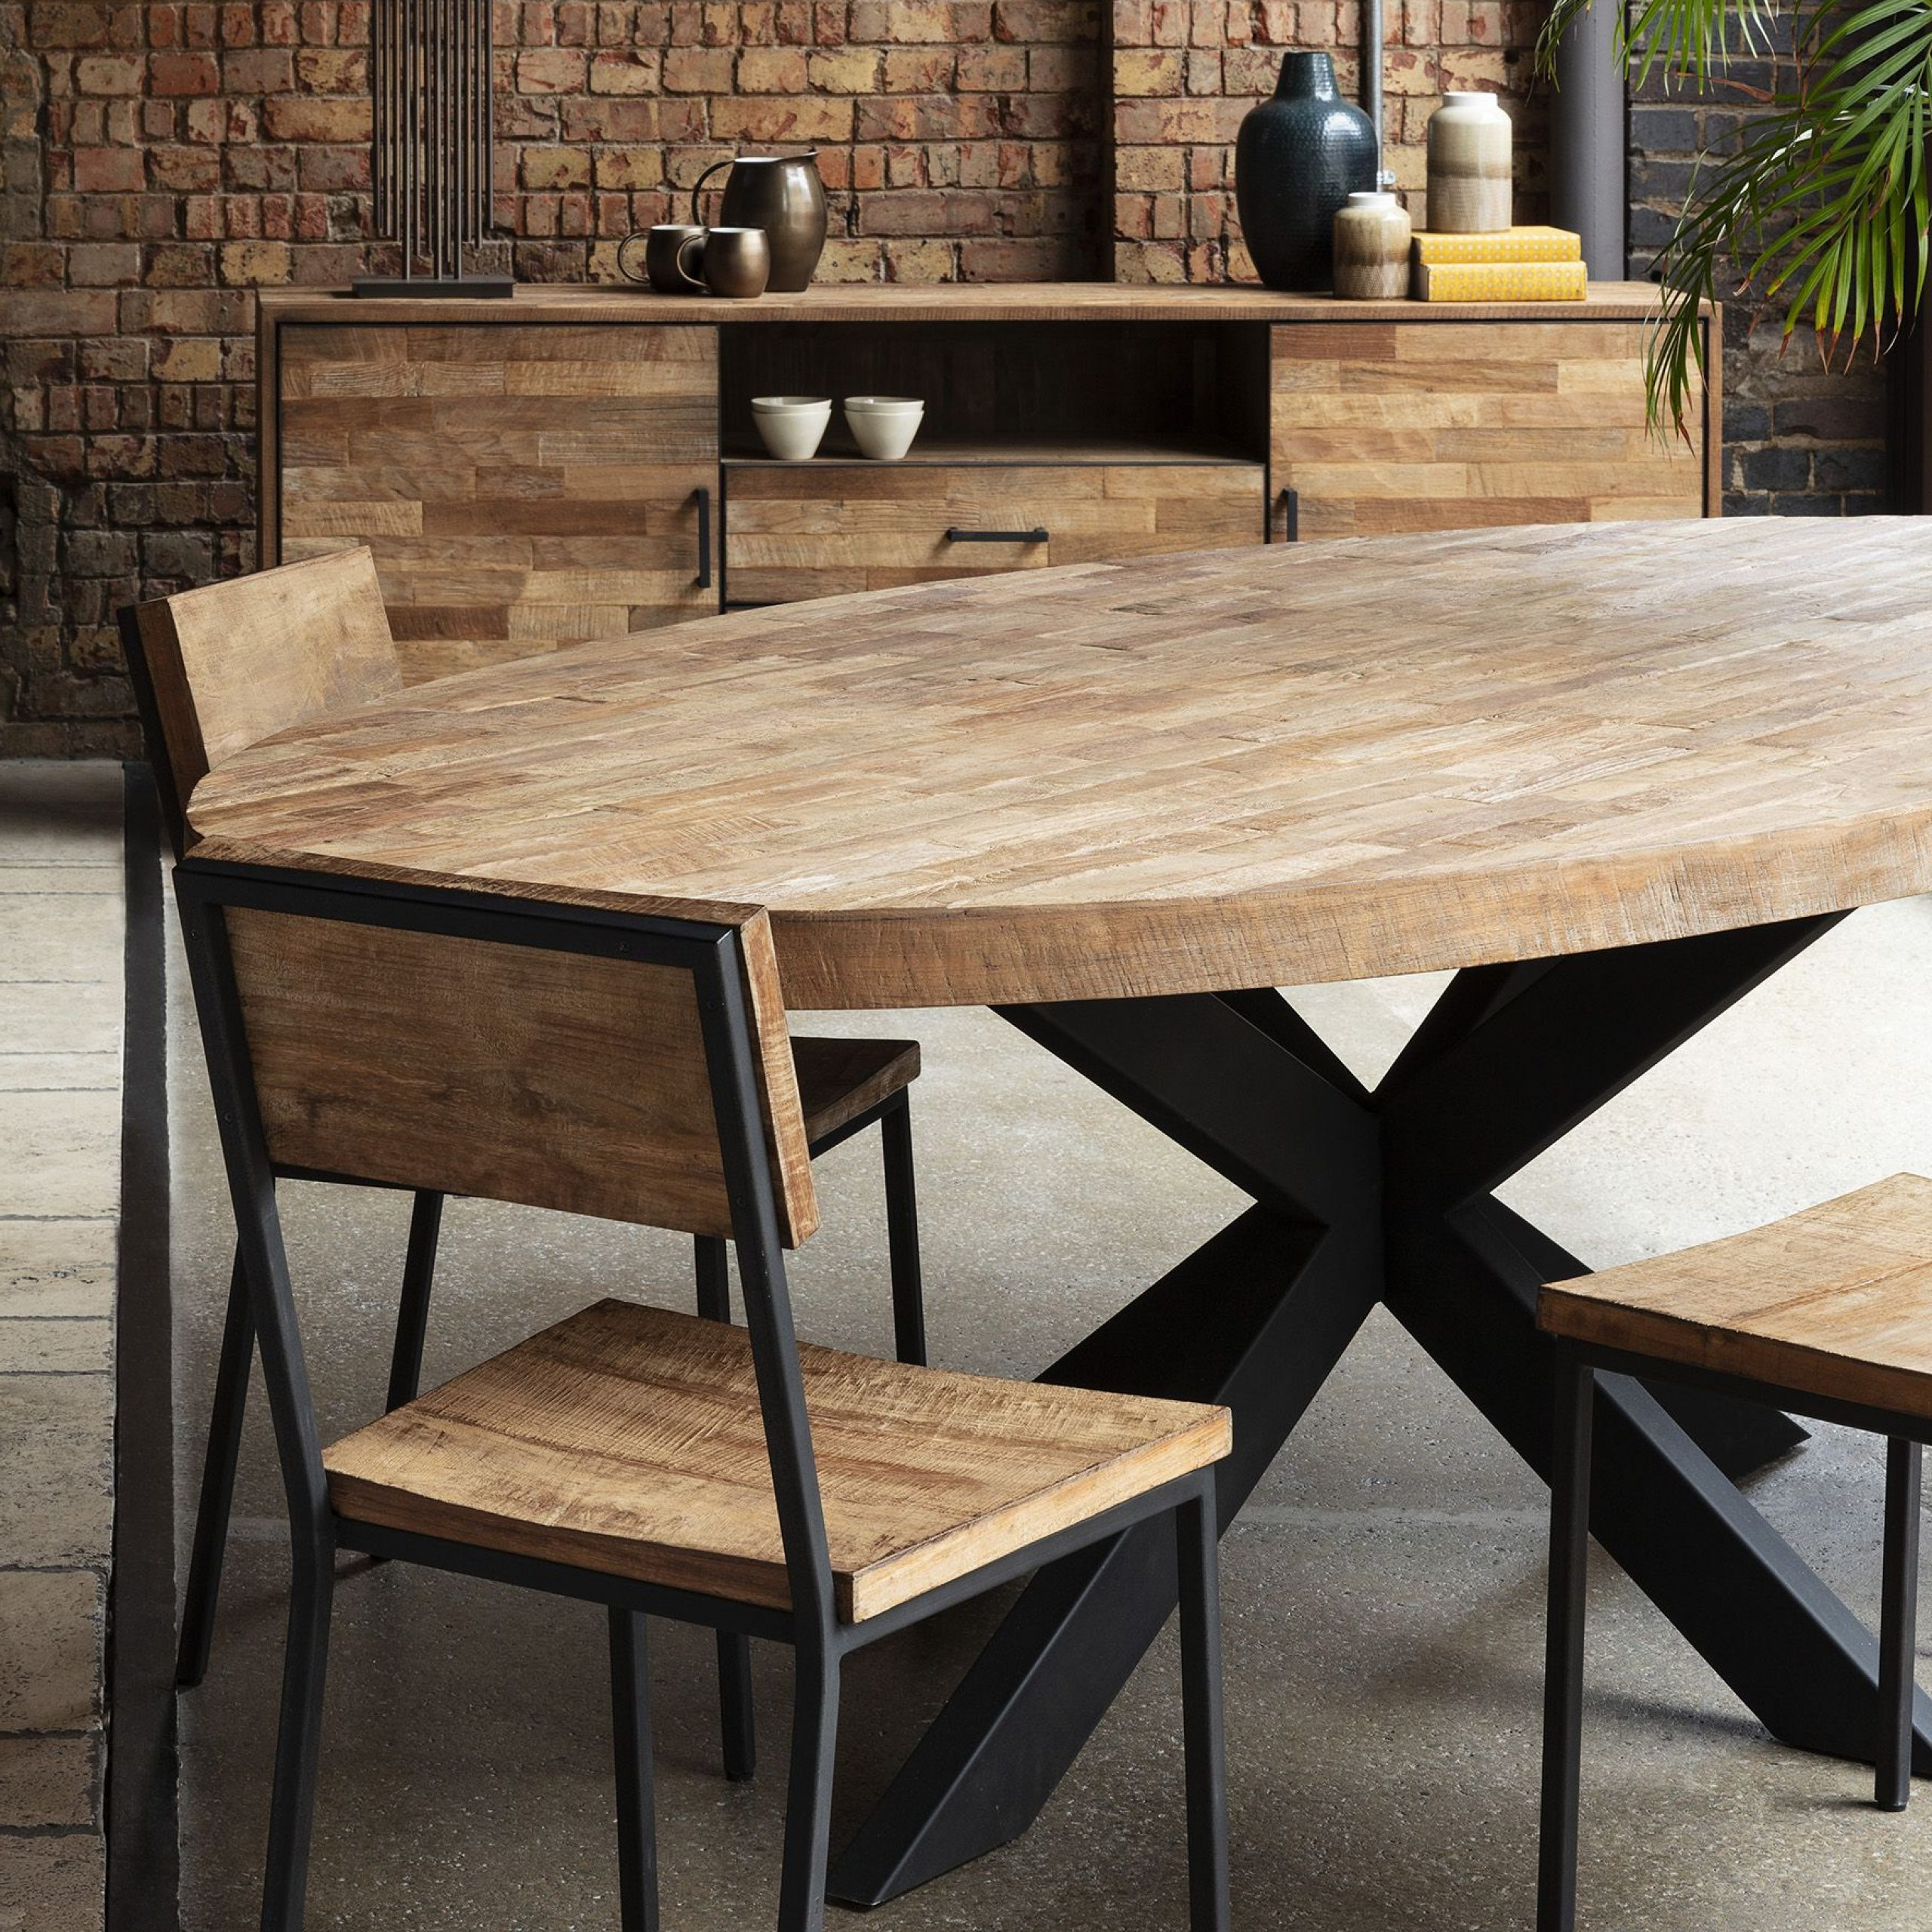 Acacia Dining Tables With Black X Legs For Well Known Baxter Bond Teak Oval Dining Table (View 5 of 25)